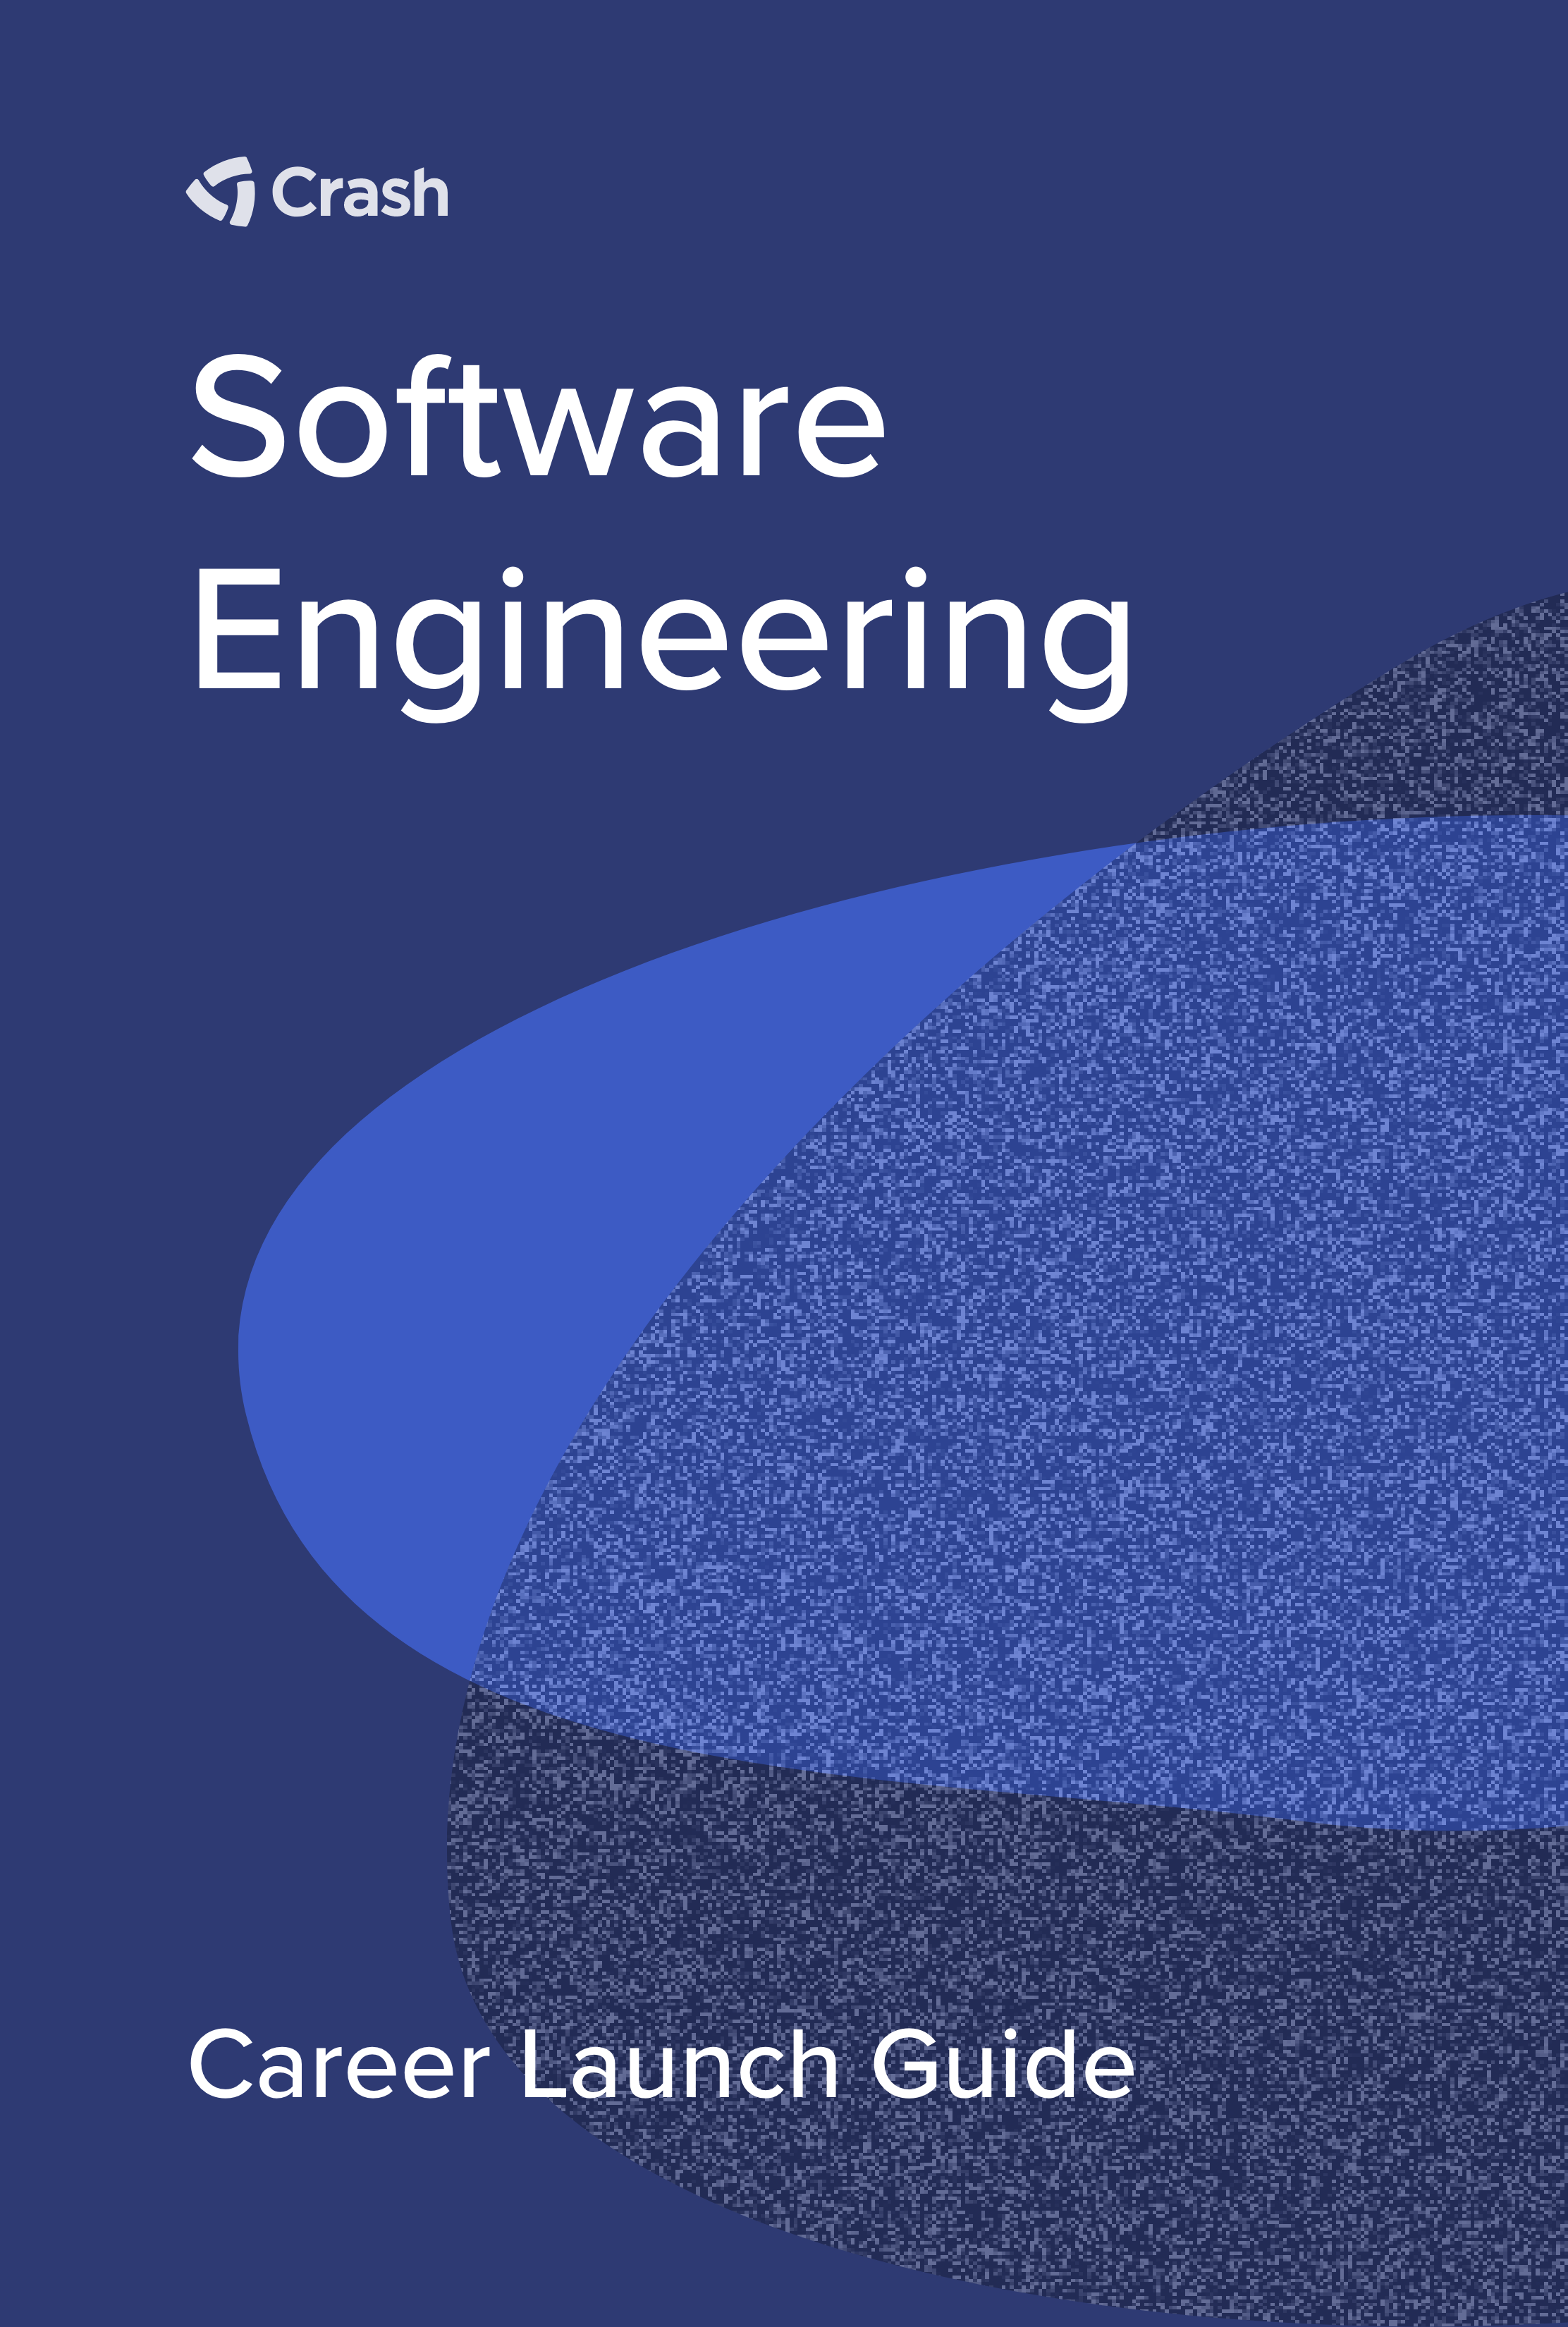 software engineering crash guide cover image